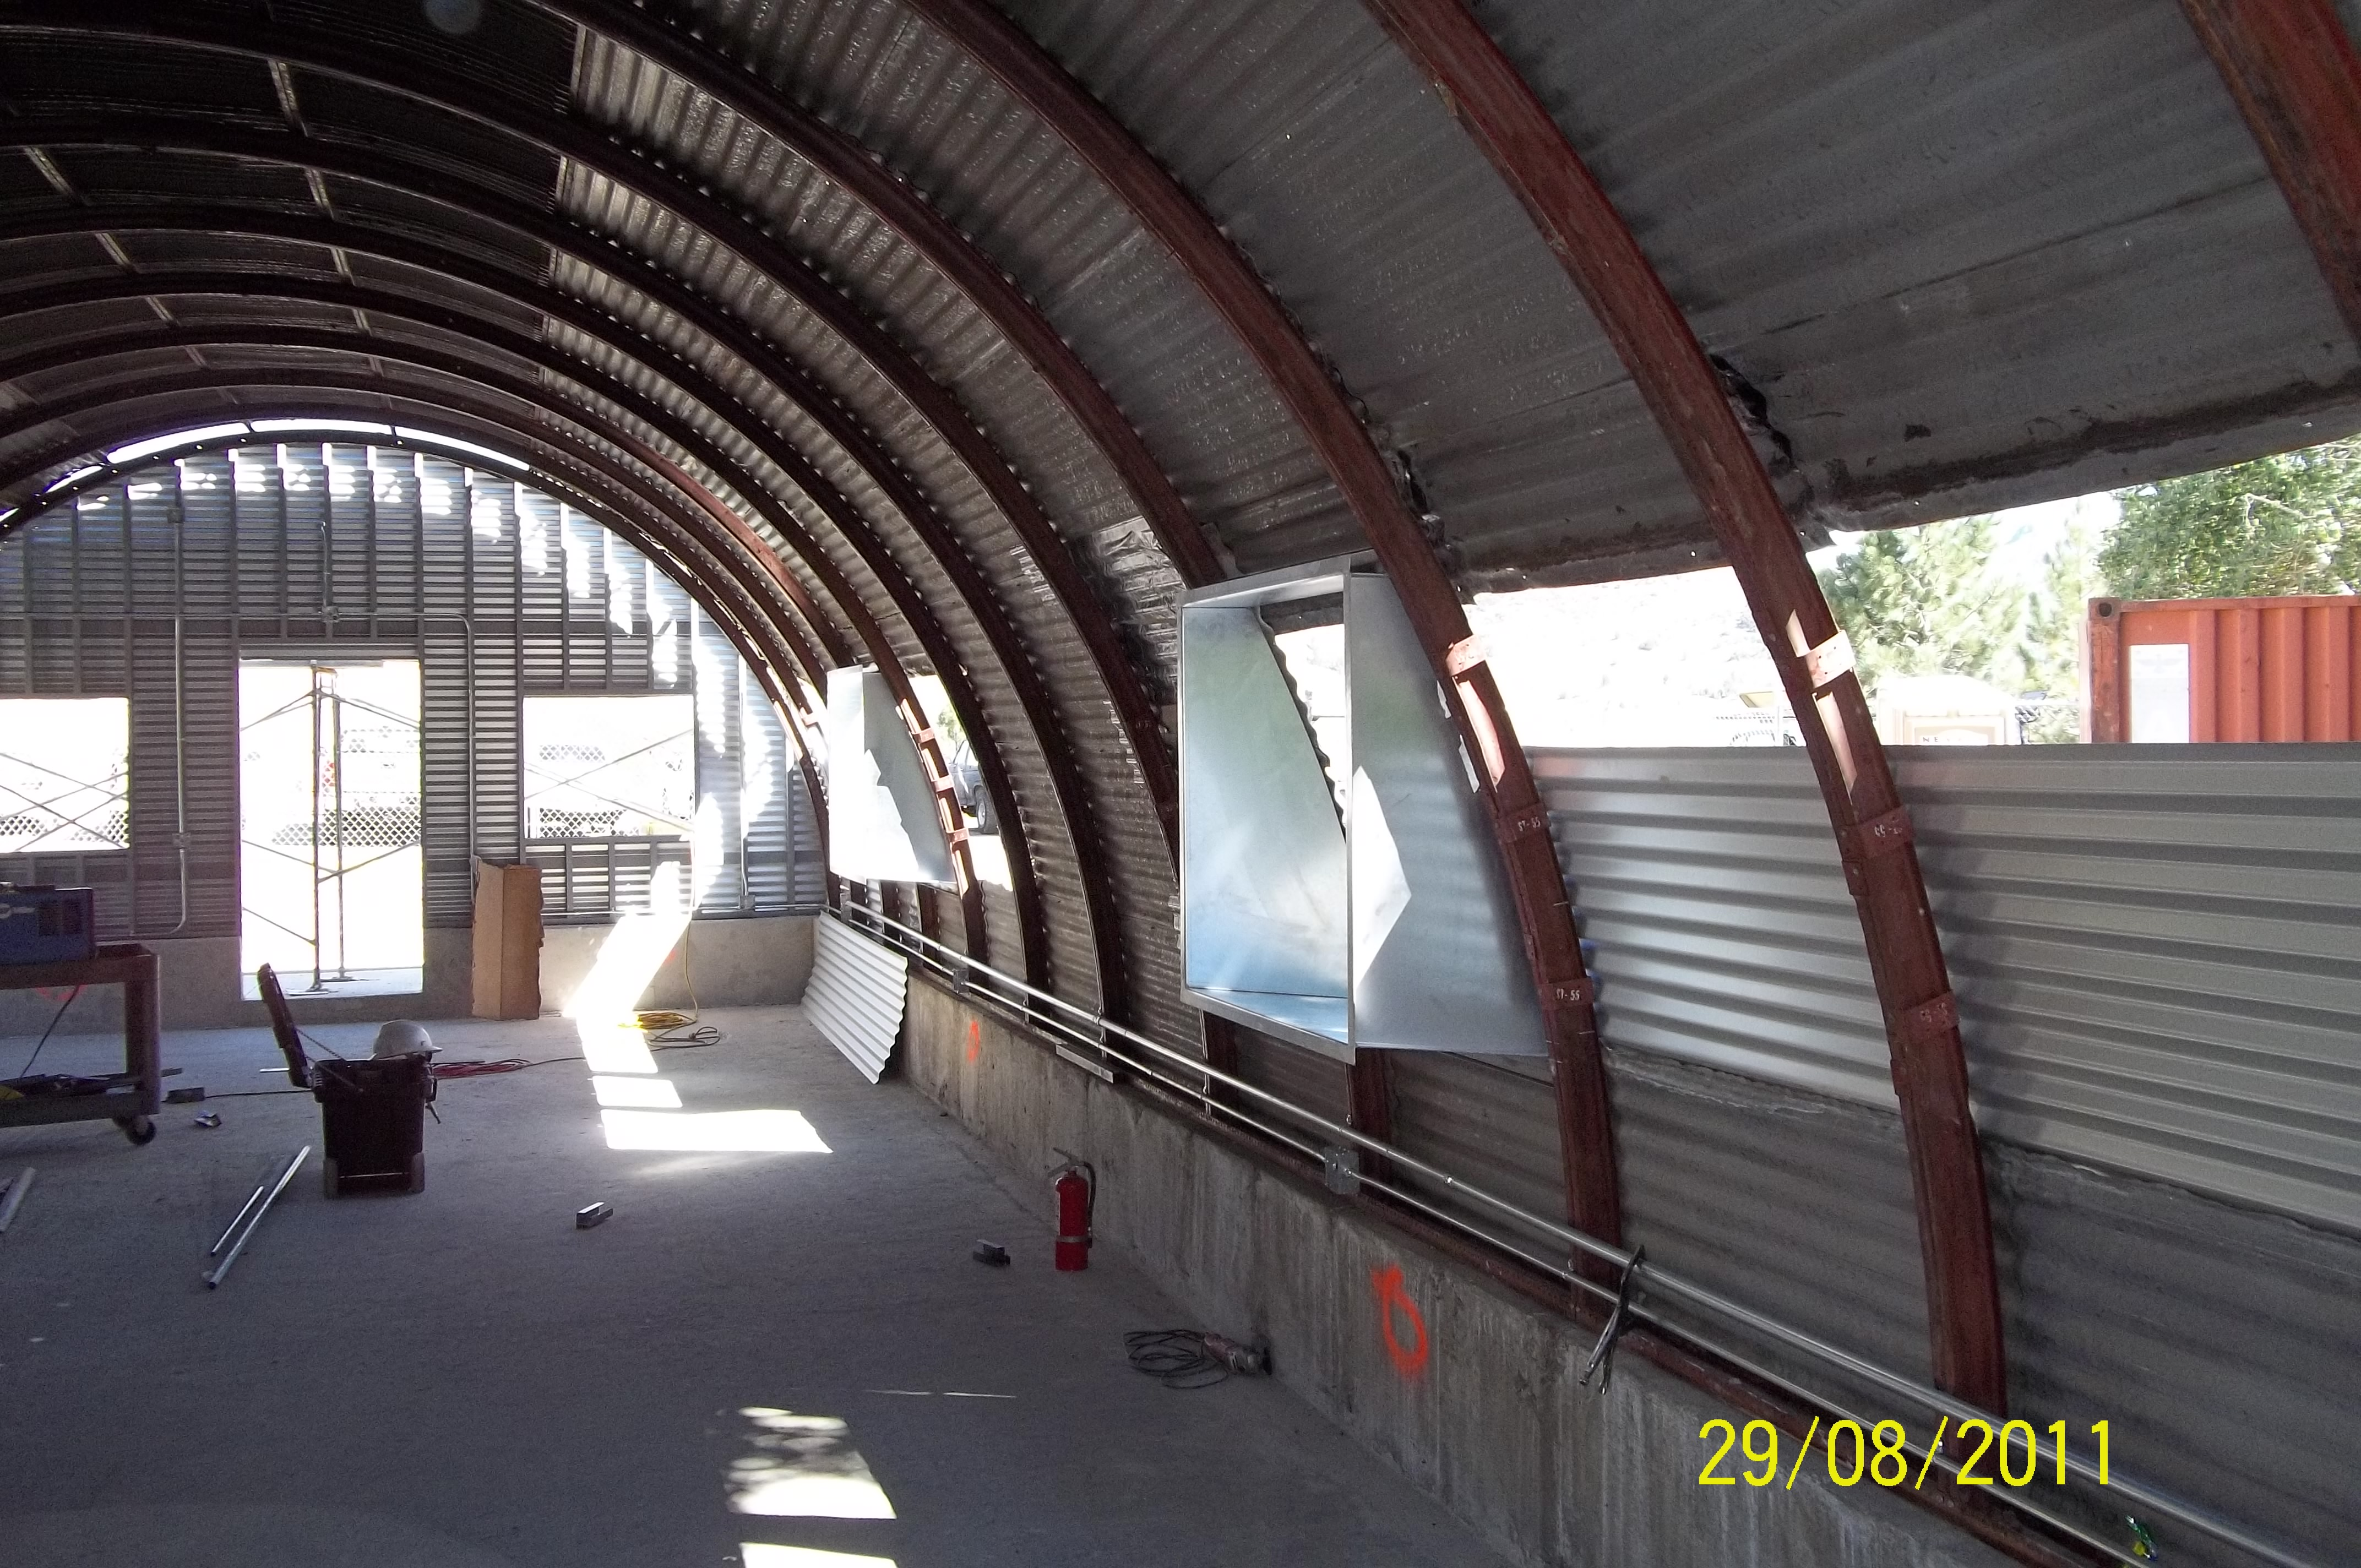 Multipurpose Cons Quonset Hut Homes Canada Interior Quonset Remodel Quonset Hut Remodel Marshall Bartels Construction Quonset Hut Homes Pros curbed Quonset Hut Homes